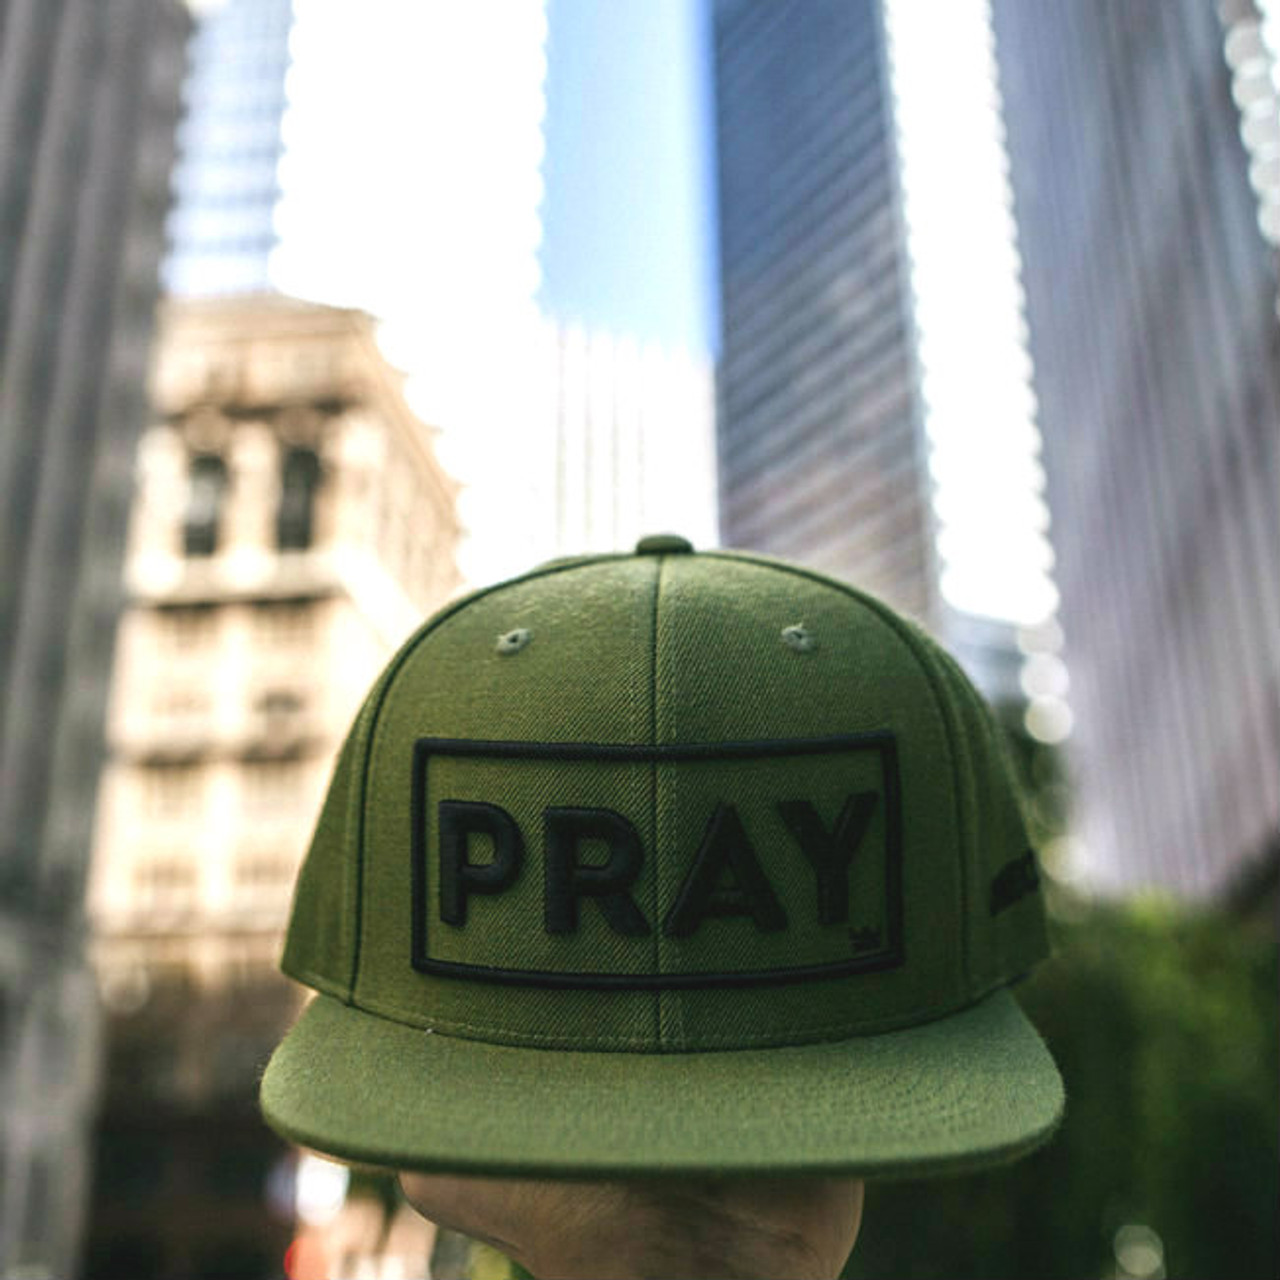 Classic PRAY - Snapback Hat - Olive